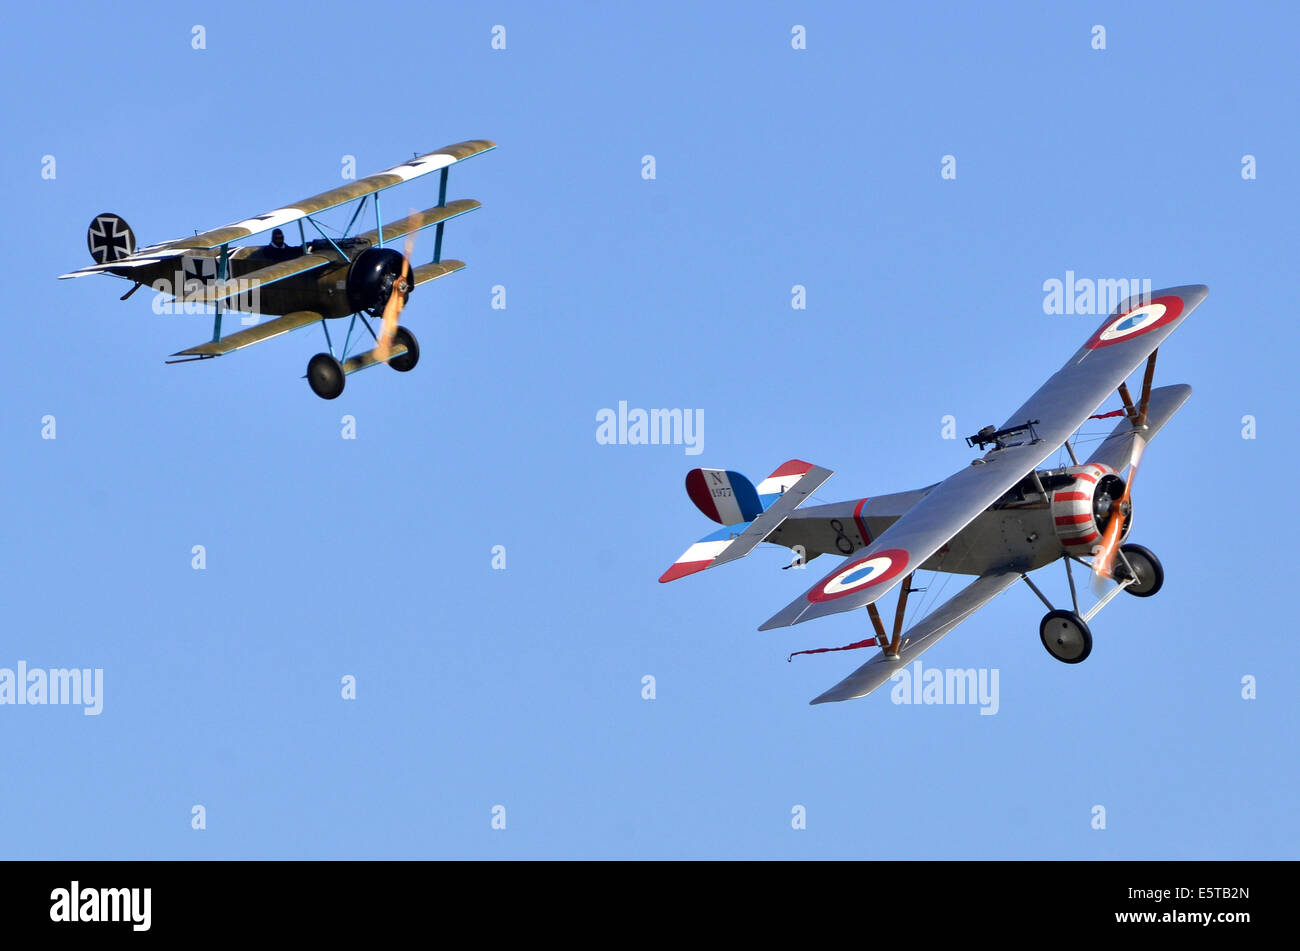 WW1 plane dogfight. Fokker Triplane DR-1 in German markings and Nieuport 23 Scout in French markings simulate a - Stock Image